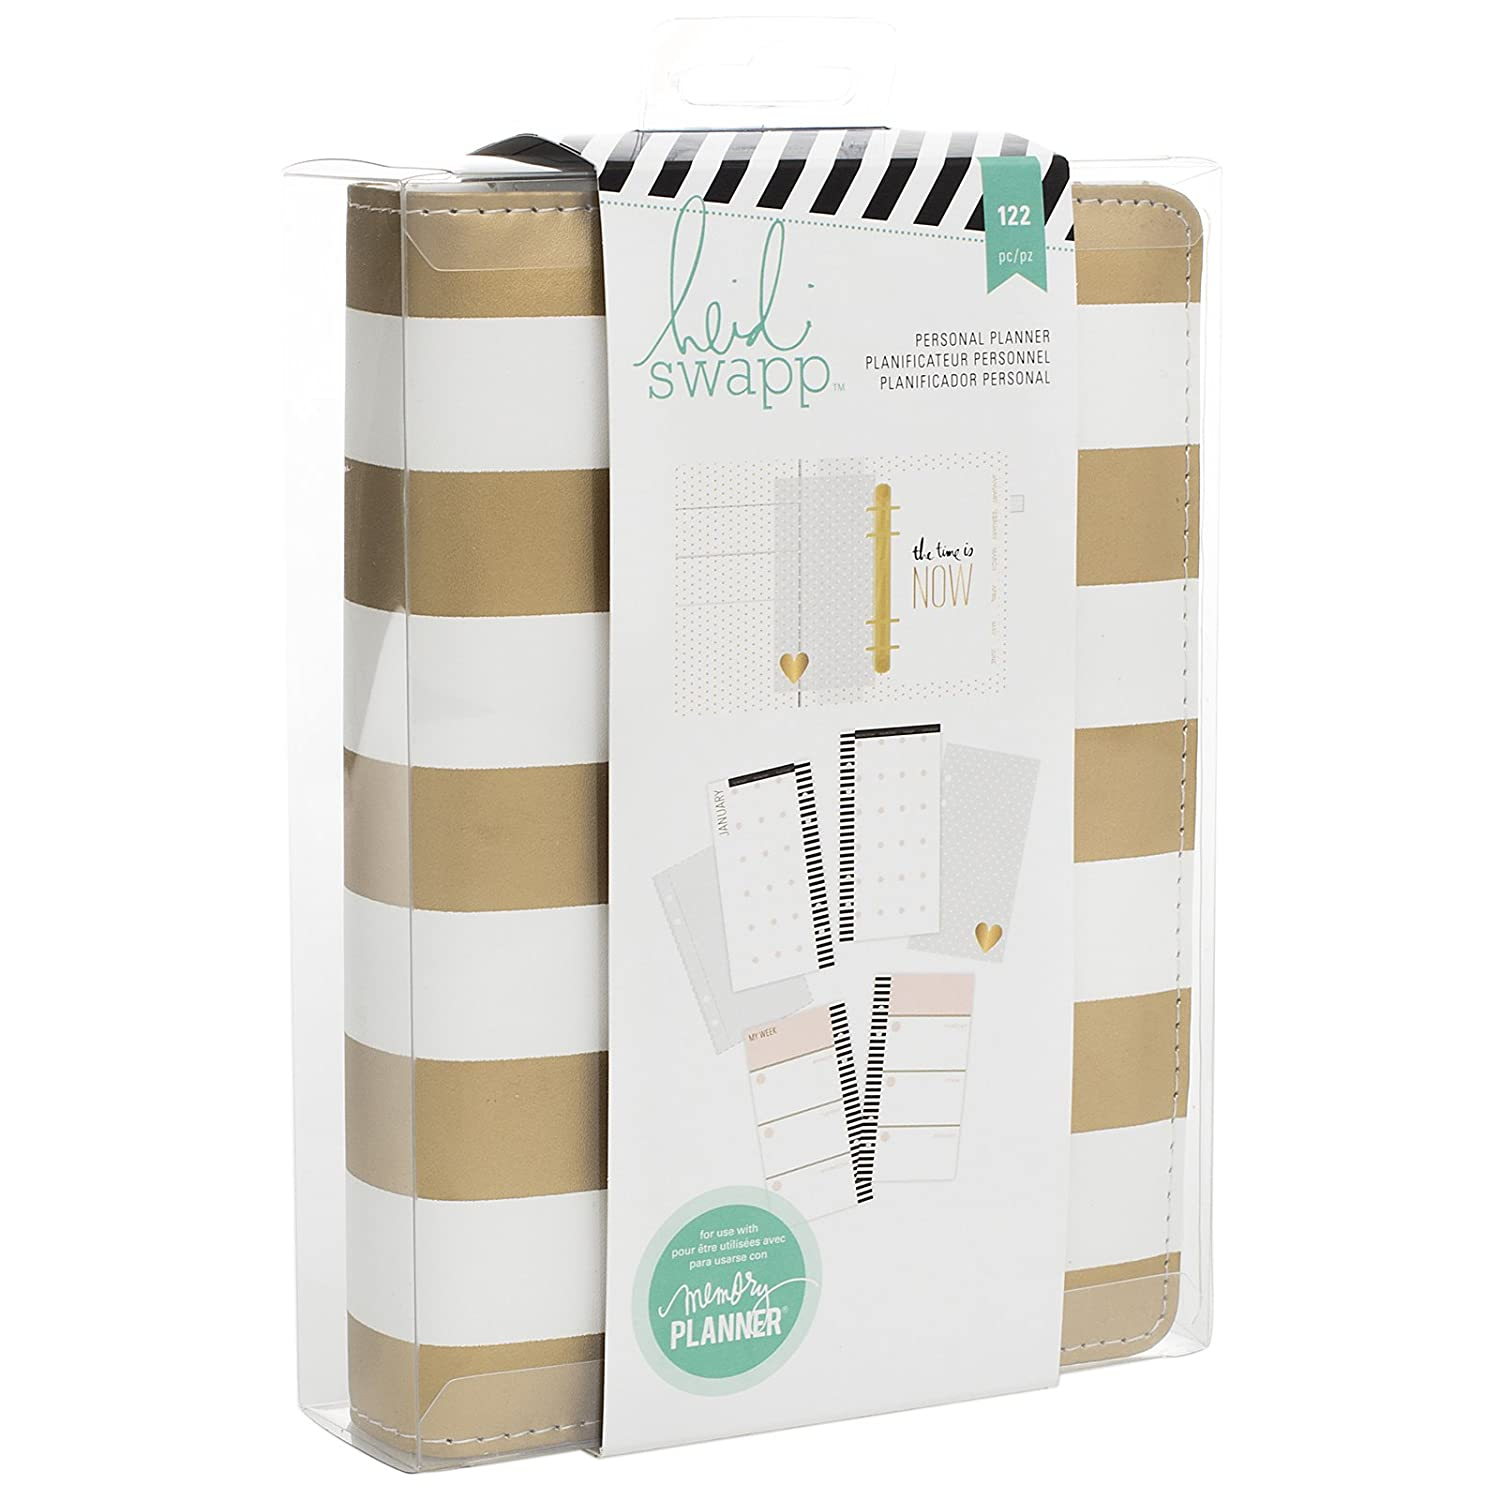 Heidi Swapp Memory Planner | Personal Planner by American Crafts | Gold and White Striped | 122 Pieces 312596